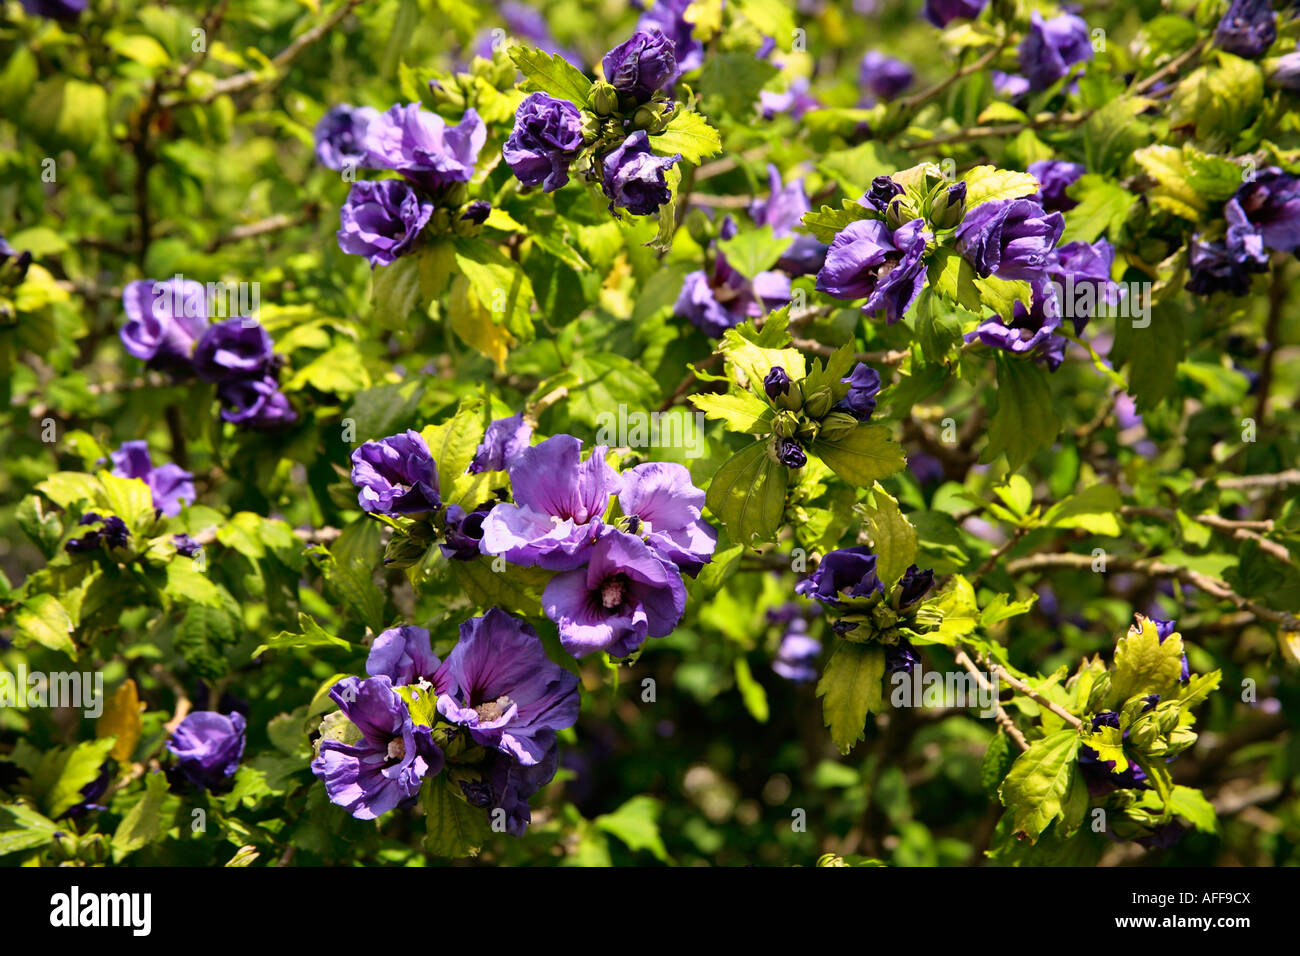 Shrubs with purple flowers pictures - Flowering Summer Shrubs Part 47 Hibiscus Shrub In Bloom With Purple Flowers In Summer